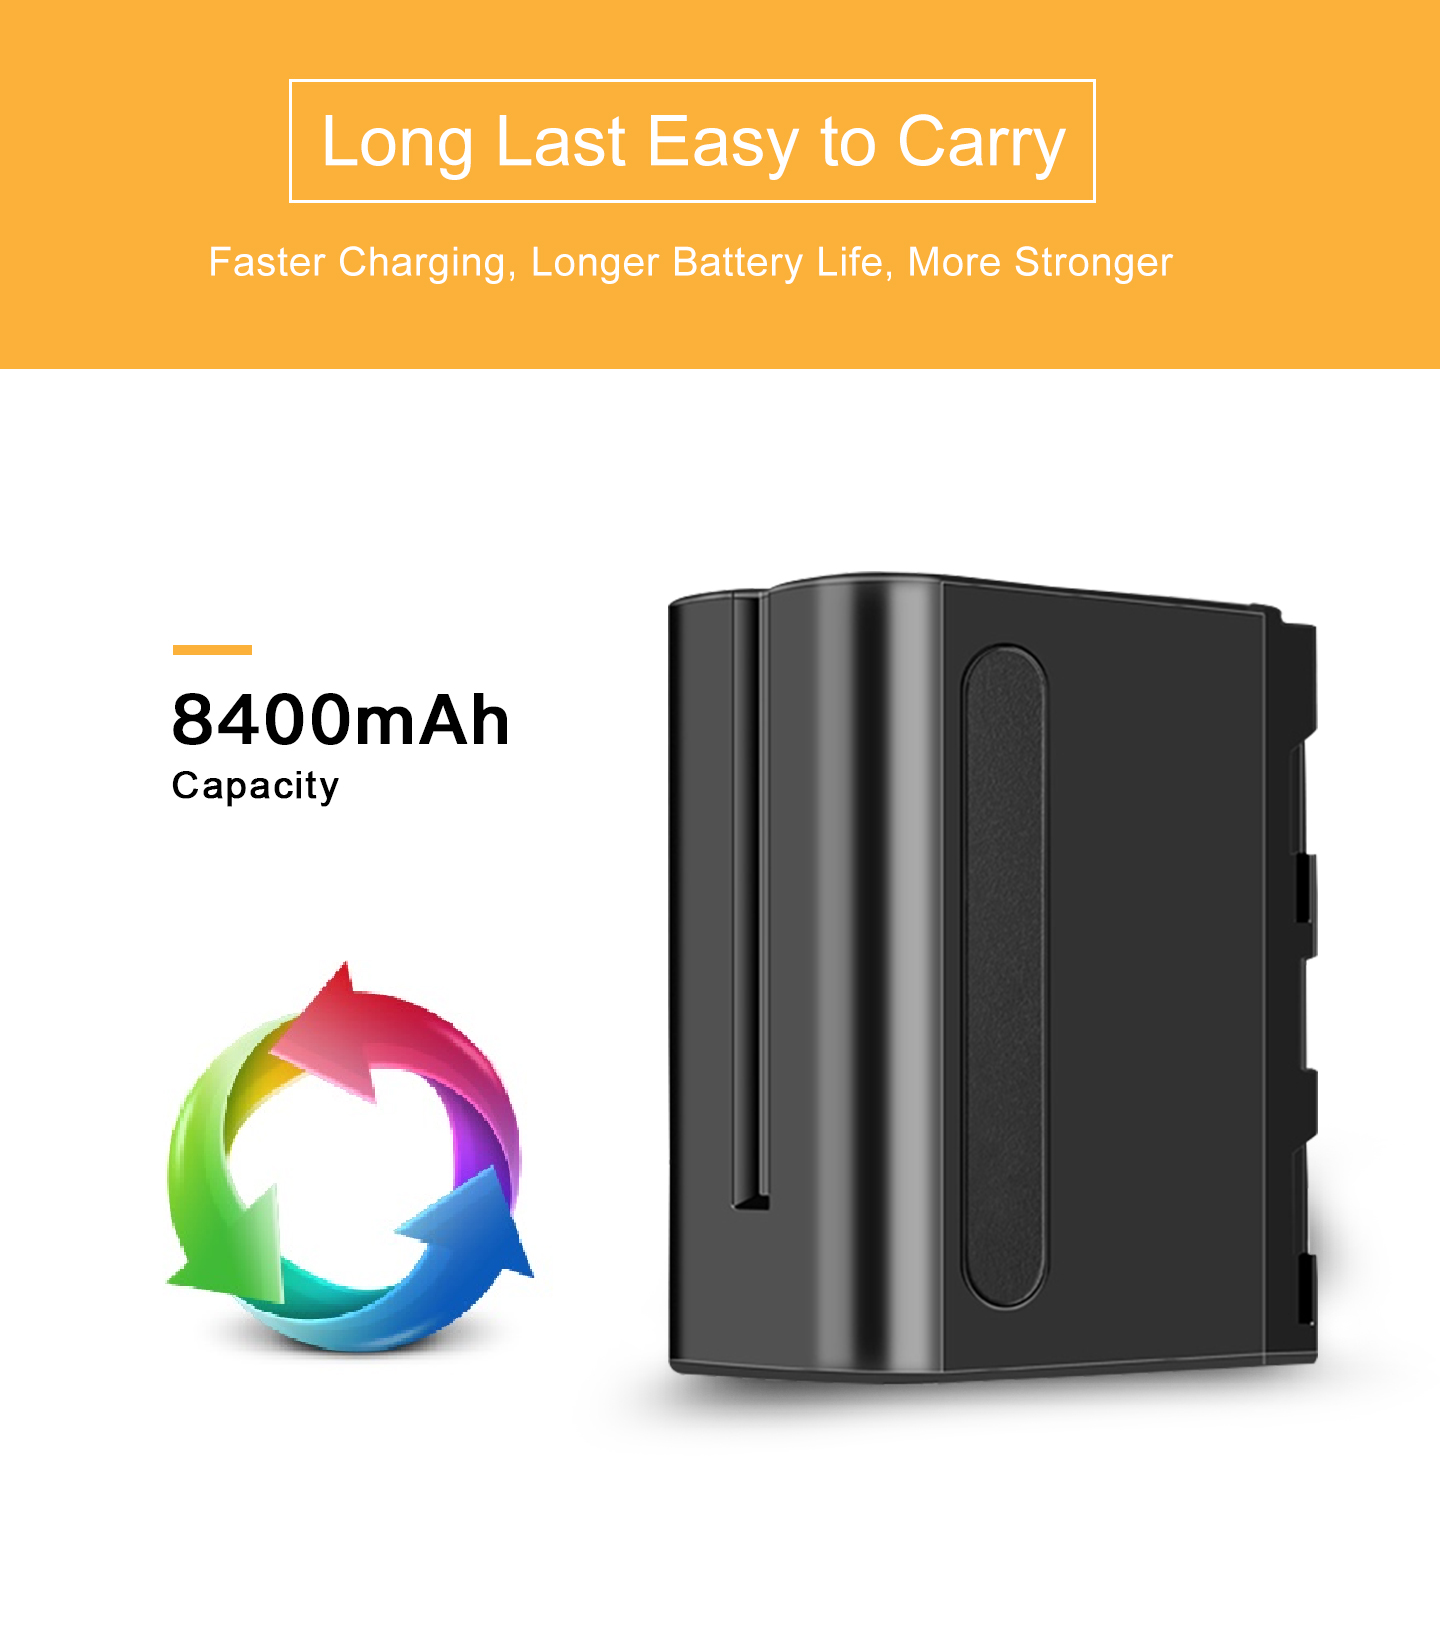 Long Last Easy to Carry